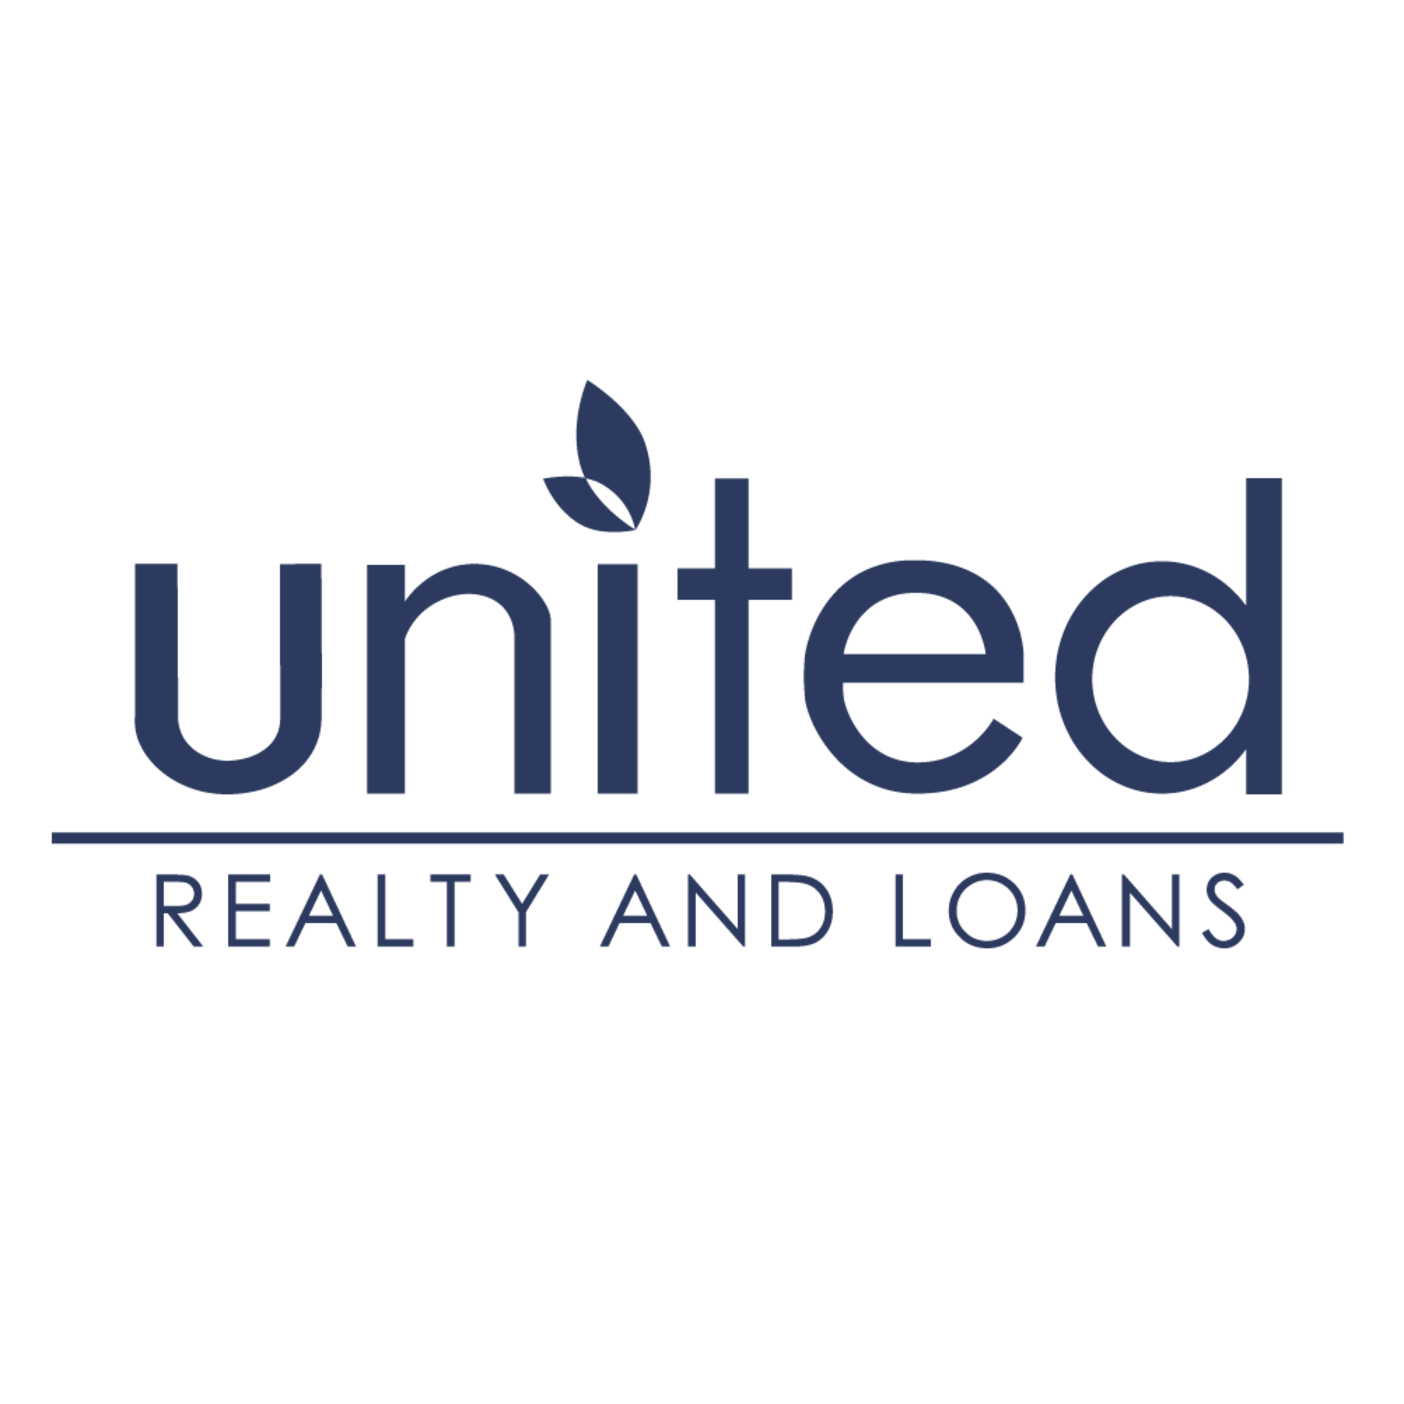 United Realty & Loans